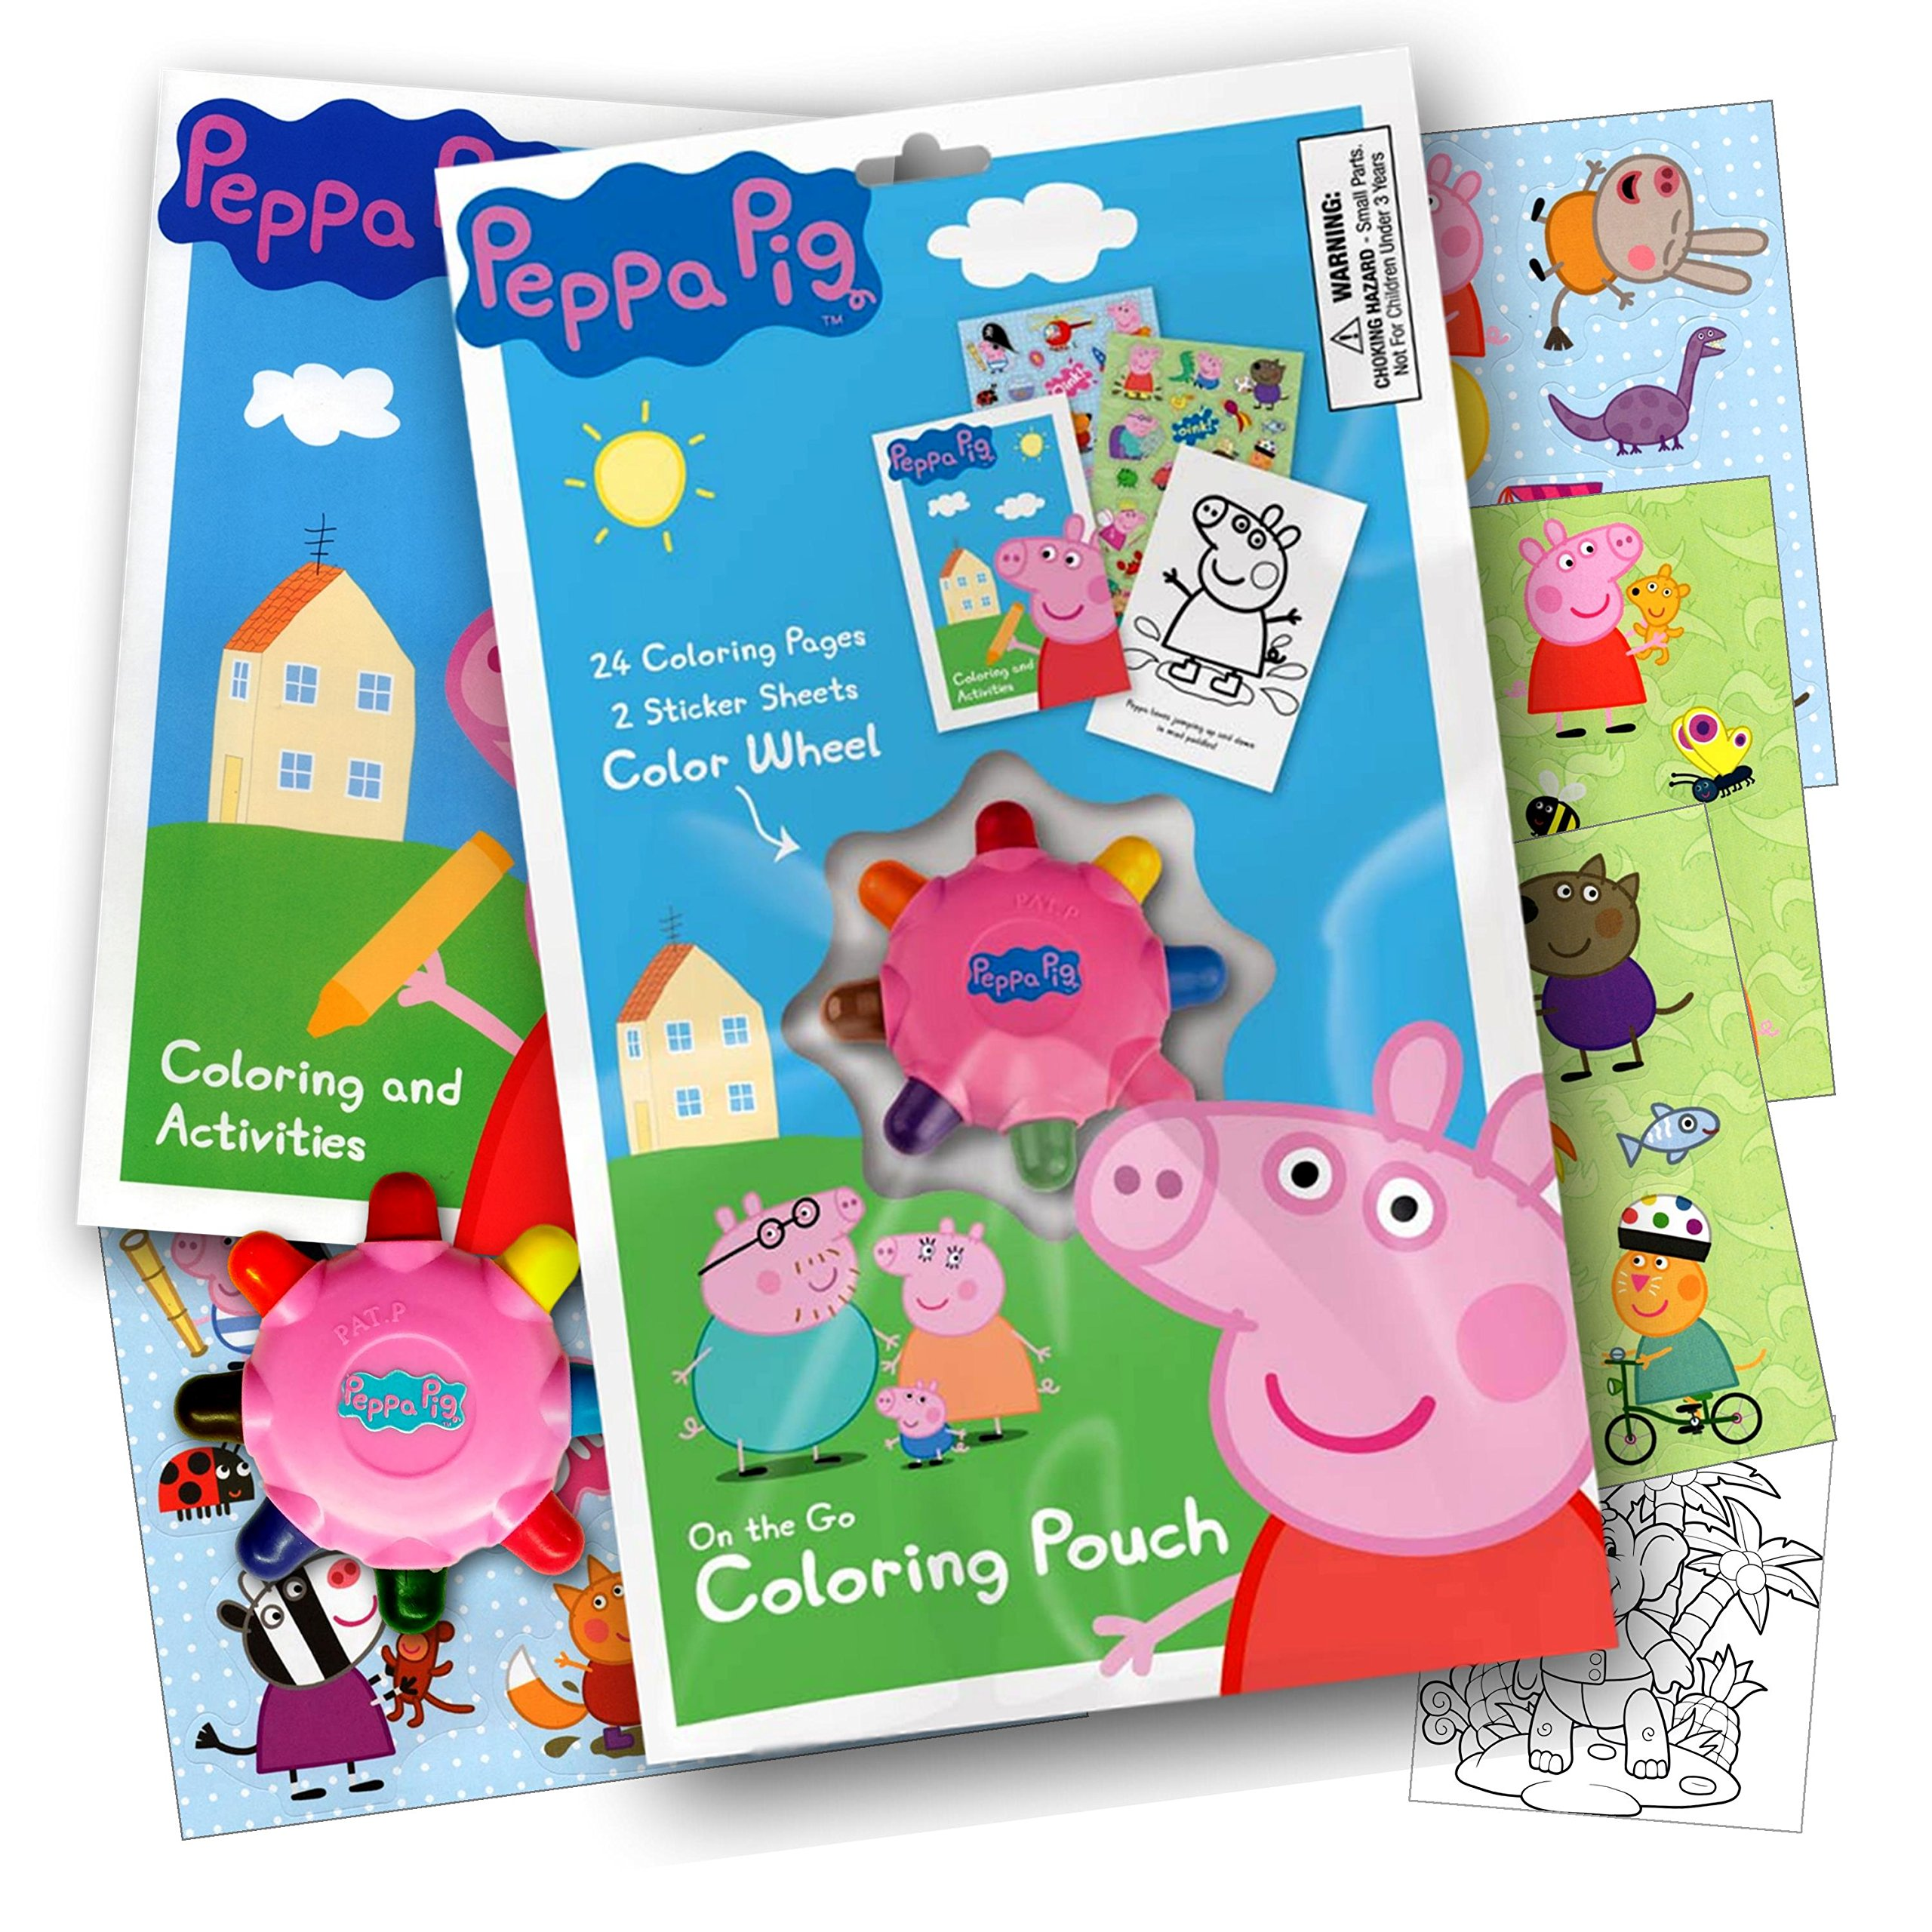 Peppa Pig On the Go Coloring Pouch Activity Set With Stickers C ...